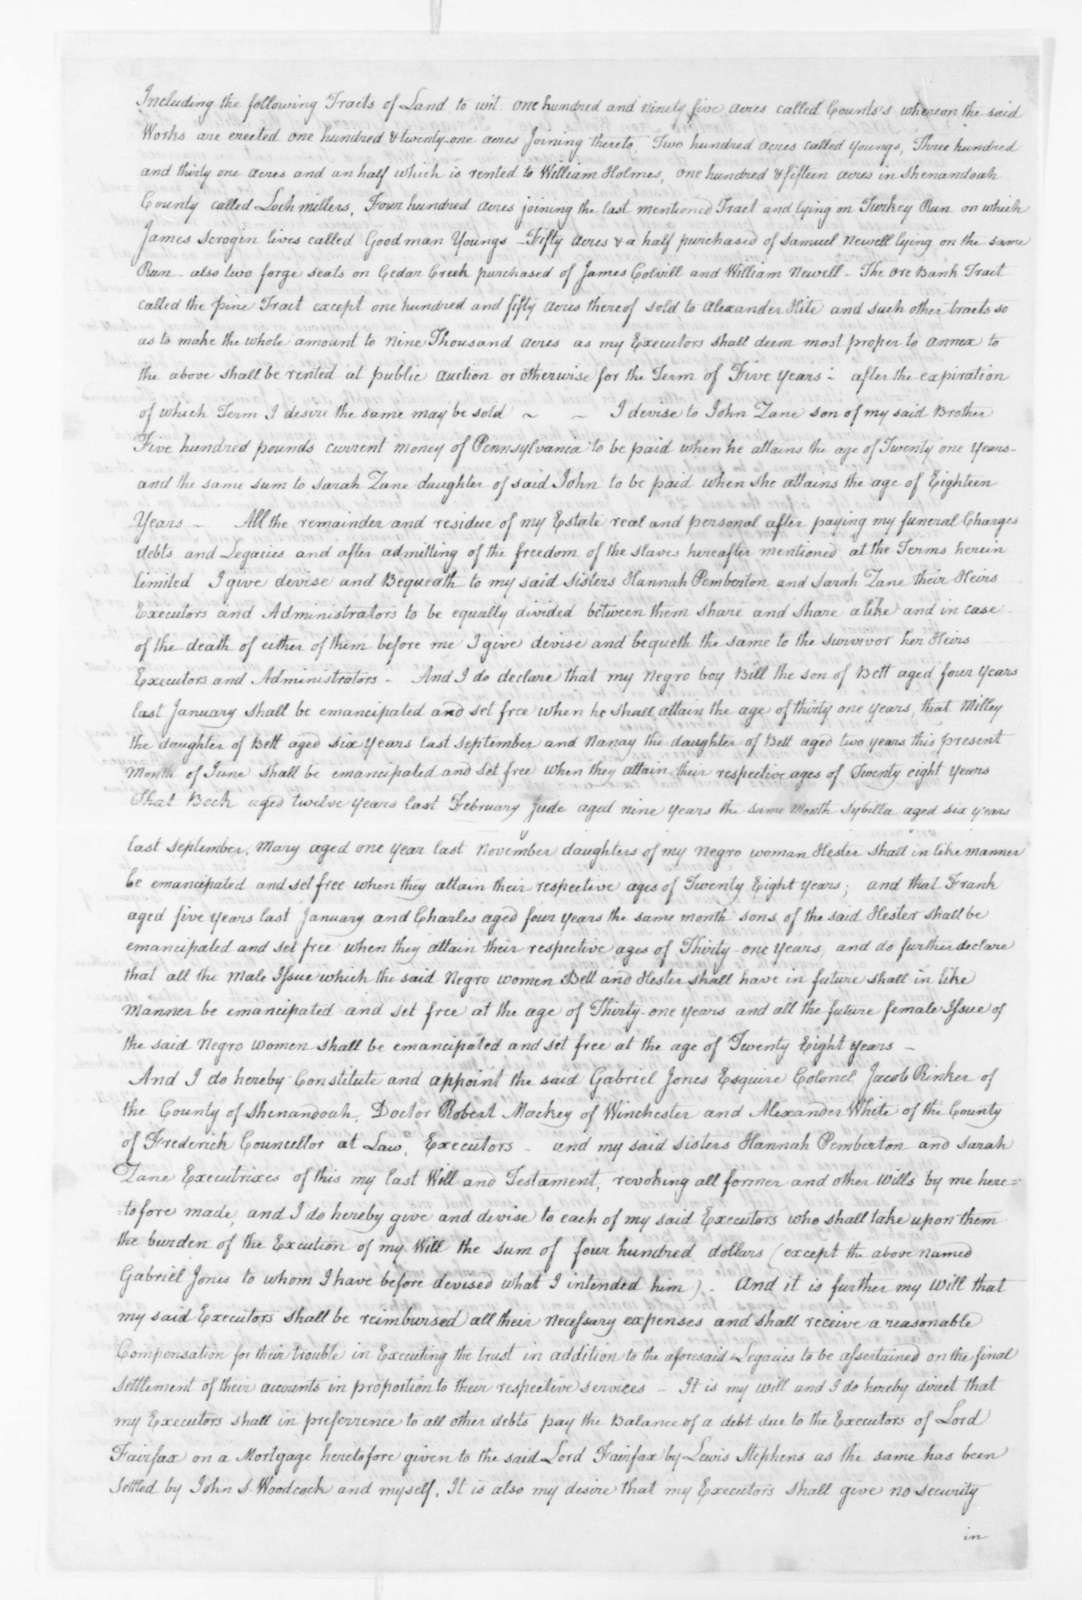 Isaac Zane, June 17, 1795. Will of Brig. Gen. Isaac Zane of the militia of the Commonwealth of Virginia.